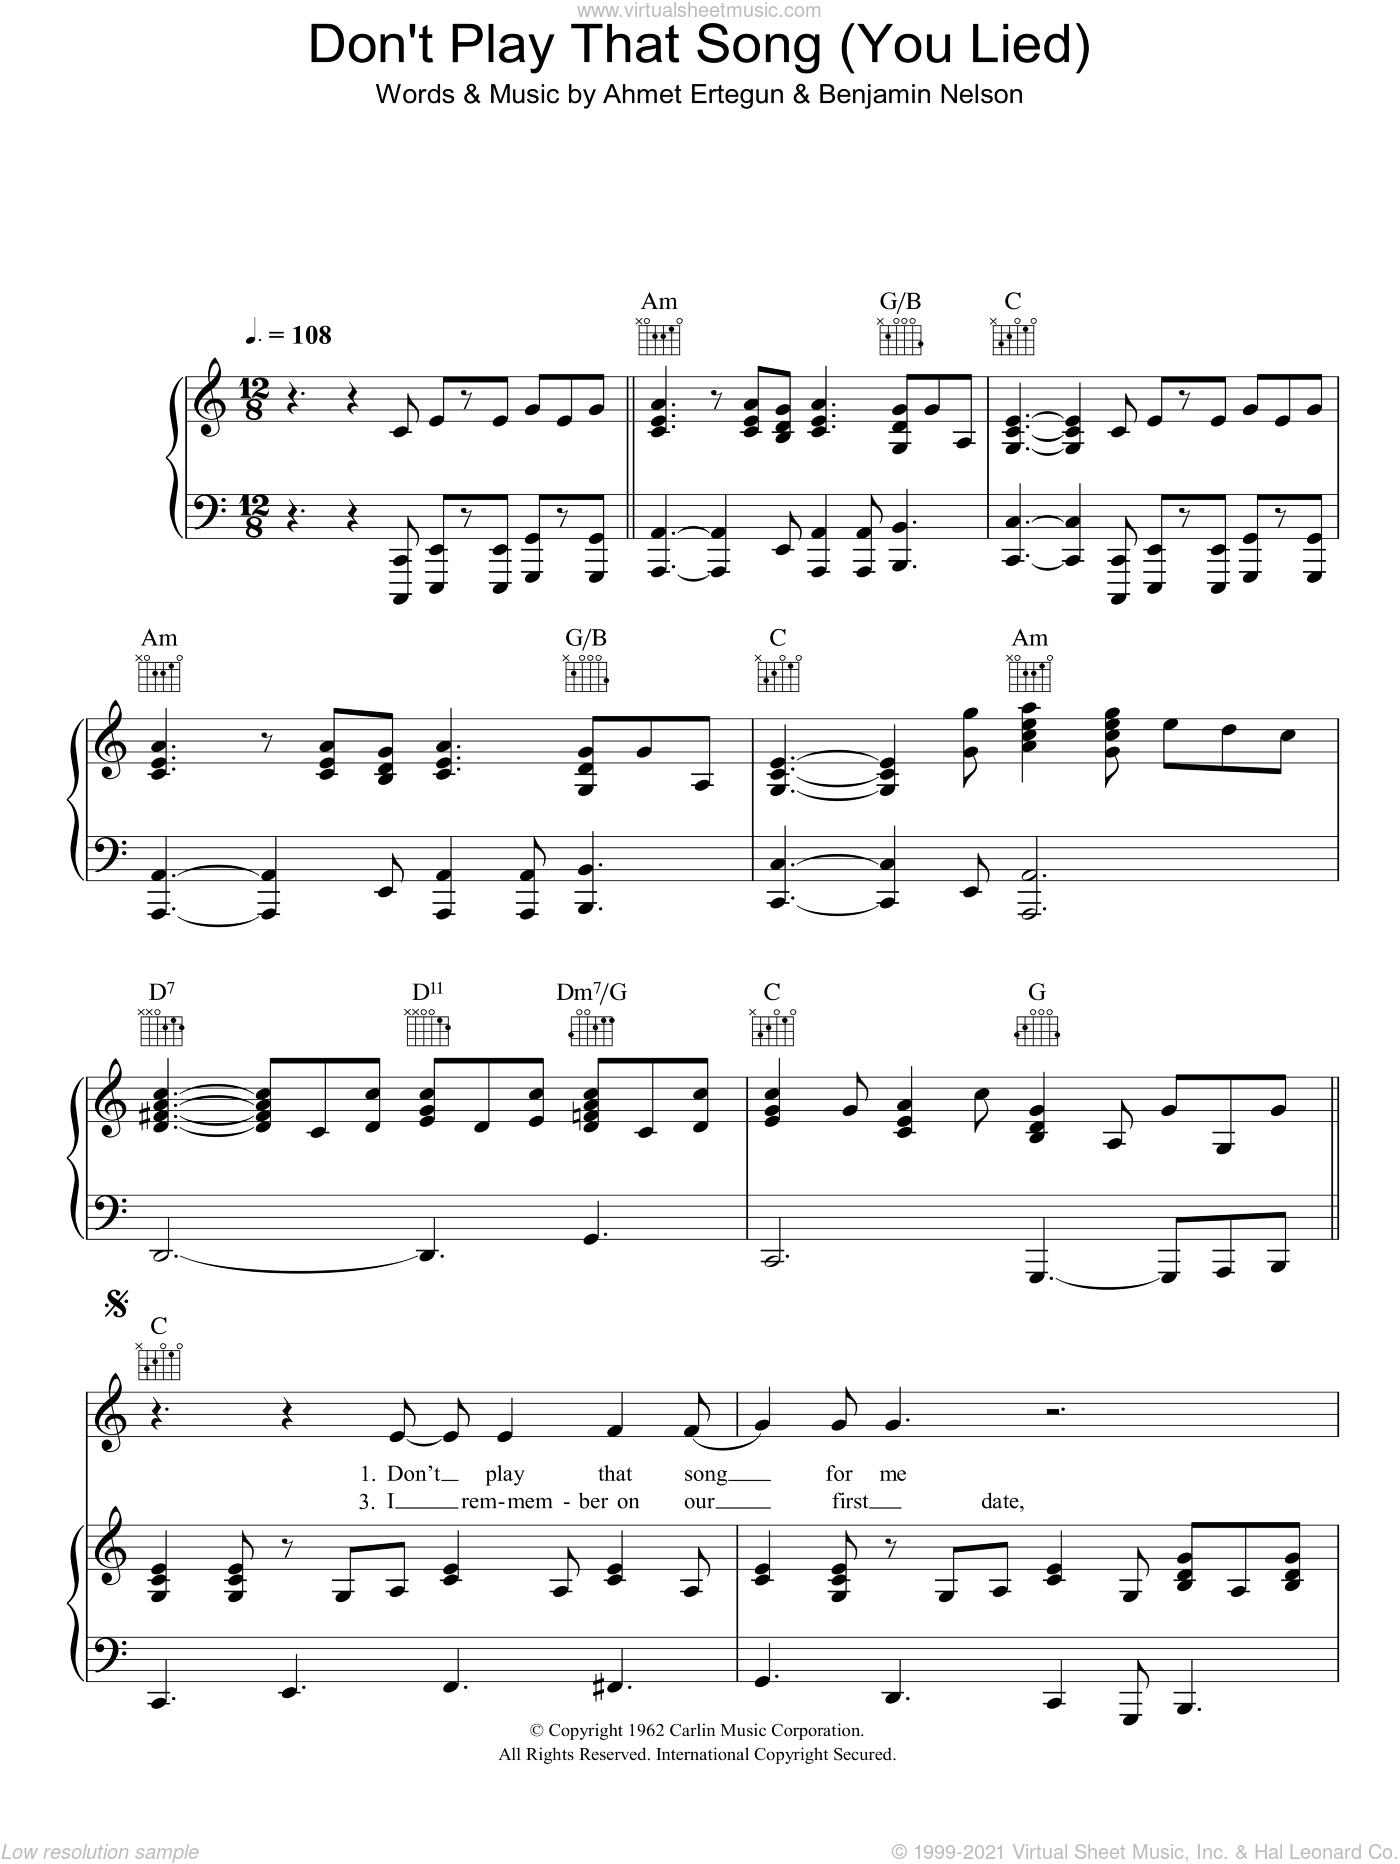 Don't Play That Song (You Lied) sheet music for voice, piano or guitar by Aretha Franklin, Ahmet Ertegun and Benjamin Nelson, intermediate skill level